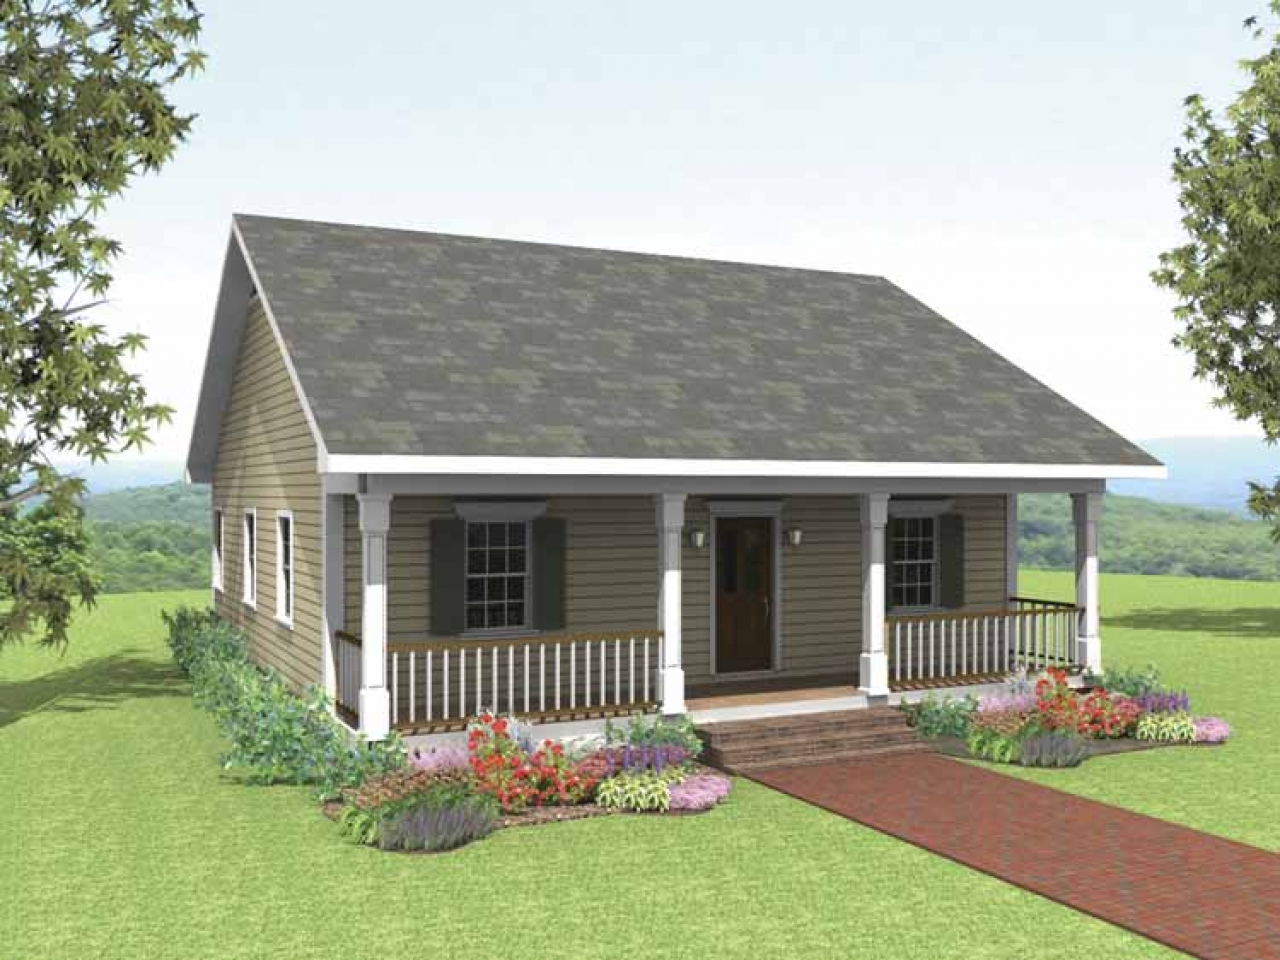 2 Bedroom Bungalow Plans Small 2 Bedroom Cottage House